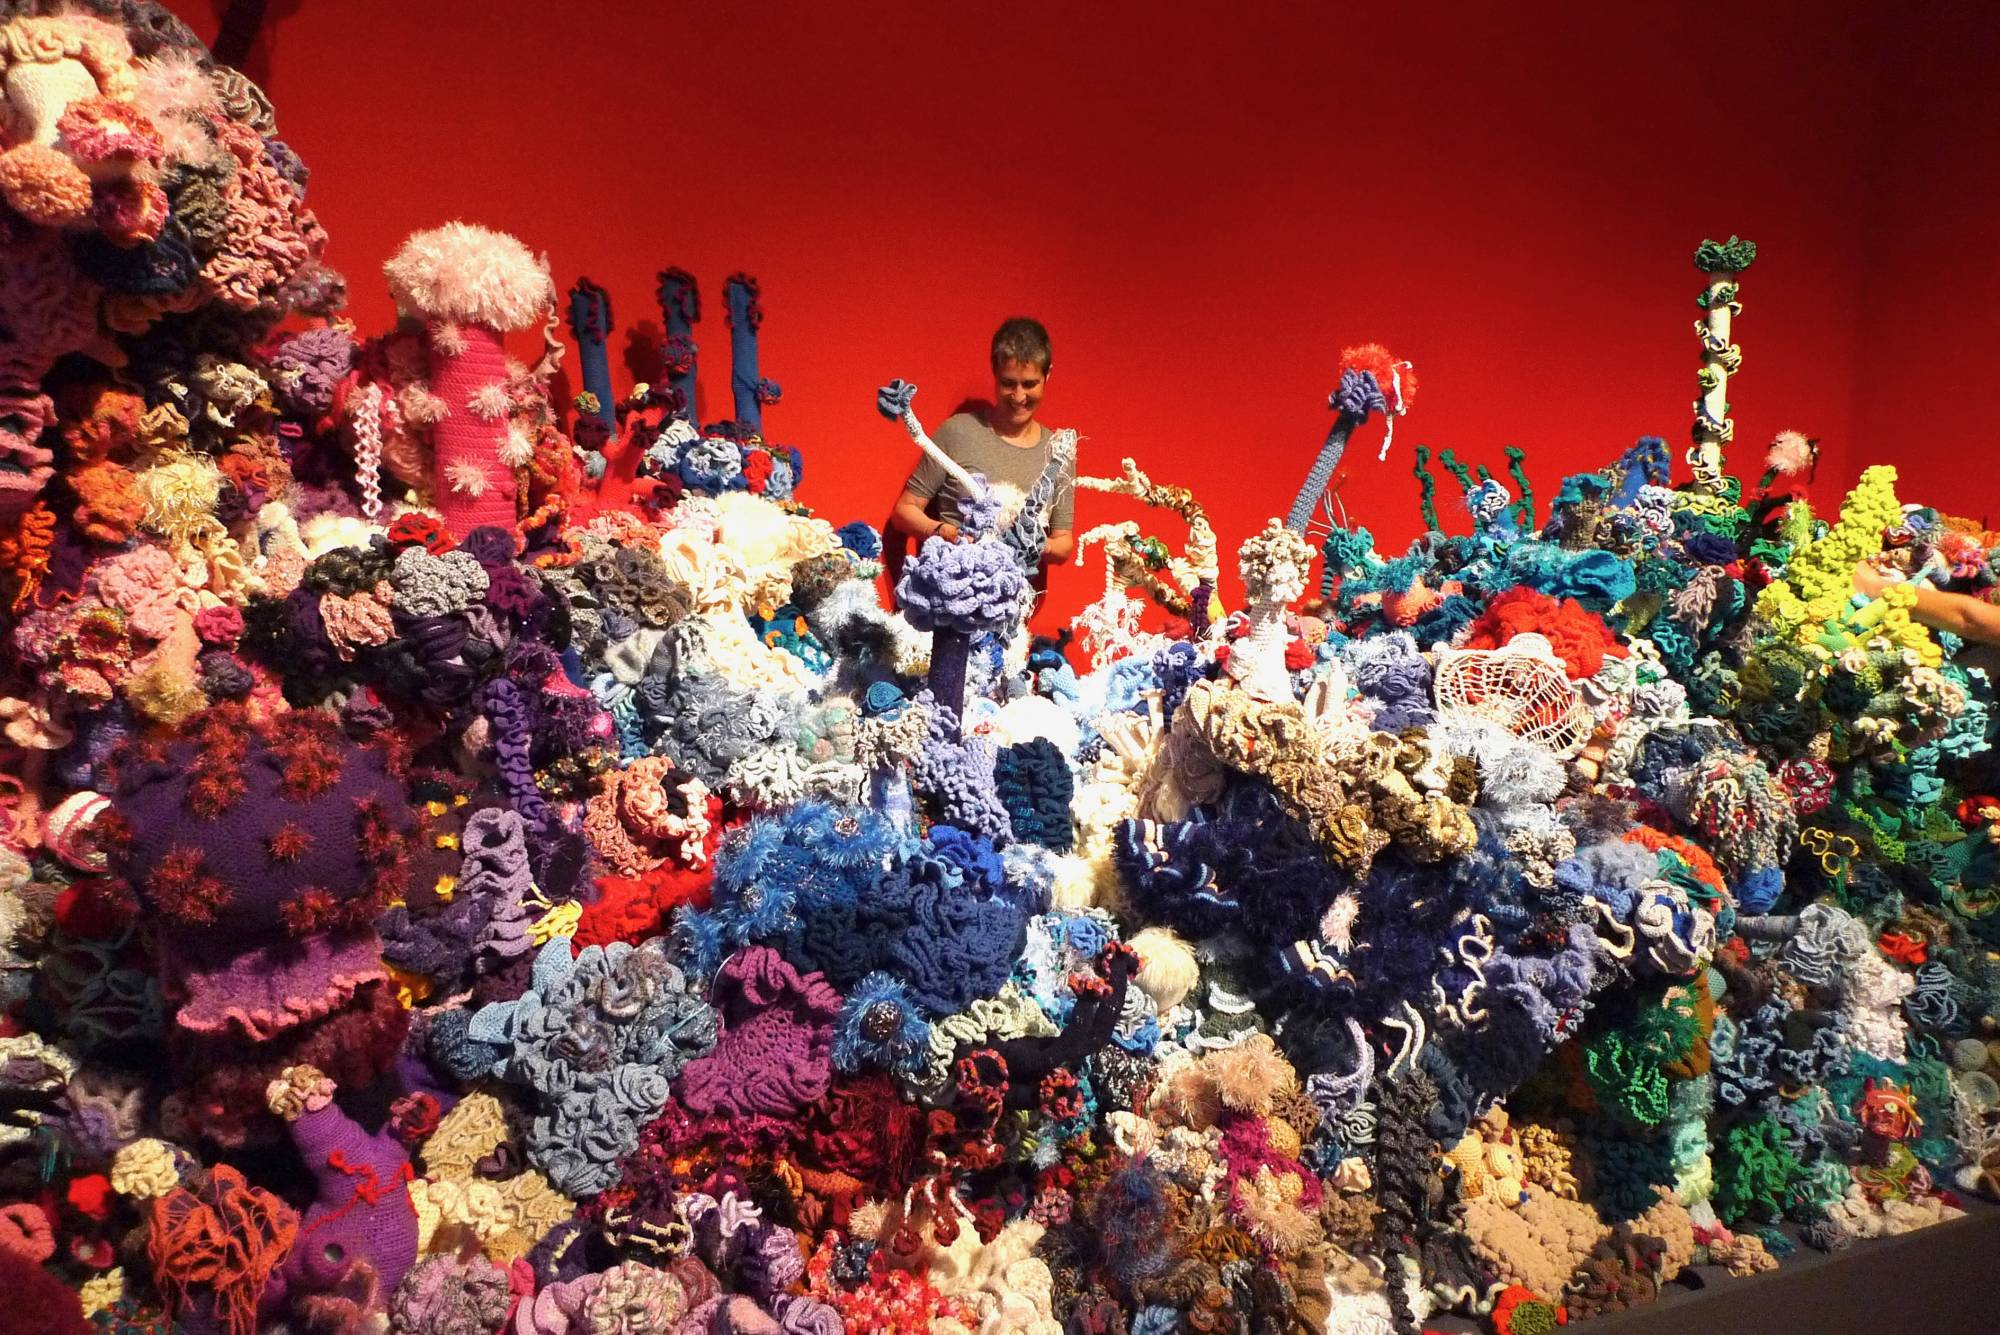 Person standing in a giant room of crocheted coral